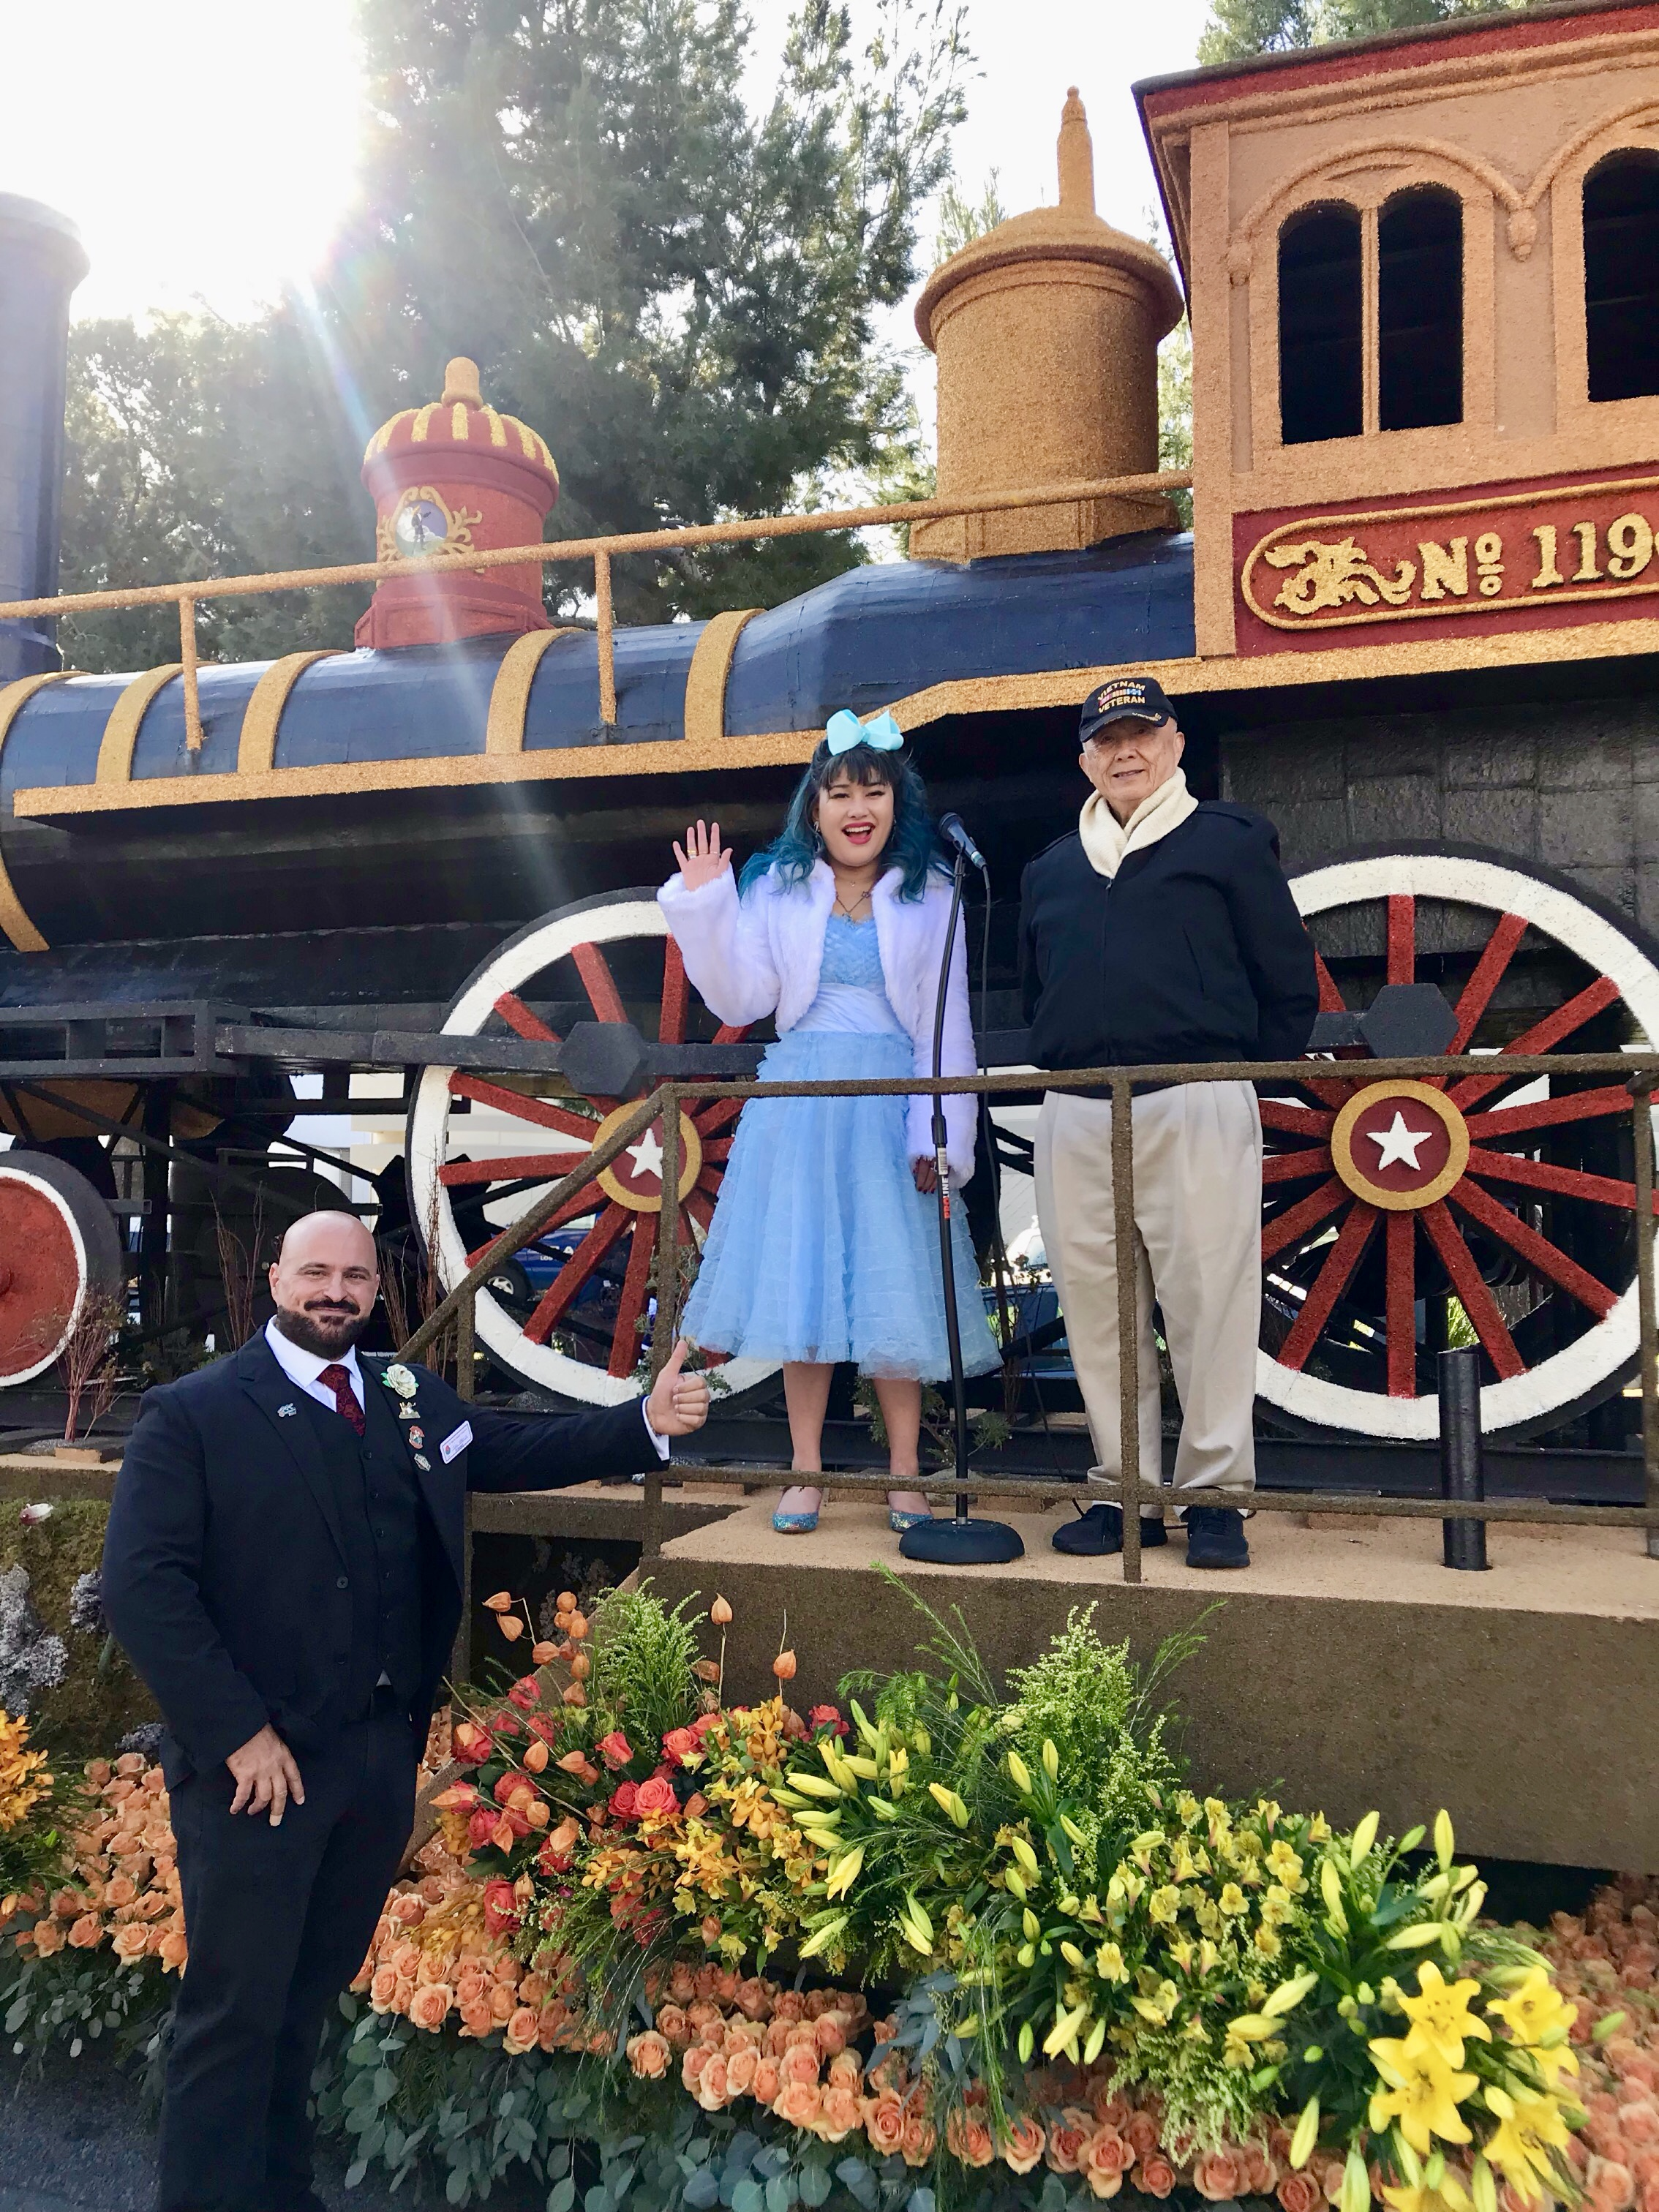 Blythe and Major General Chen pose with the Harmony Through Union float designer, Mike Abboud, during Judging Day, December 31st, 2018.